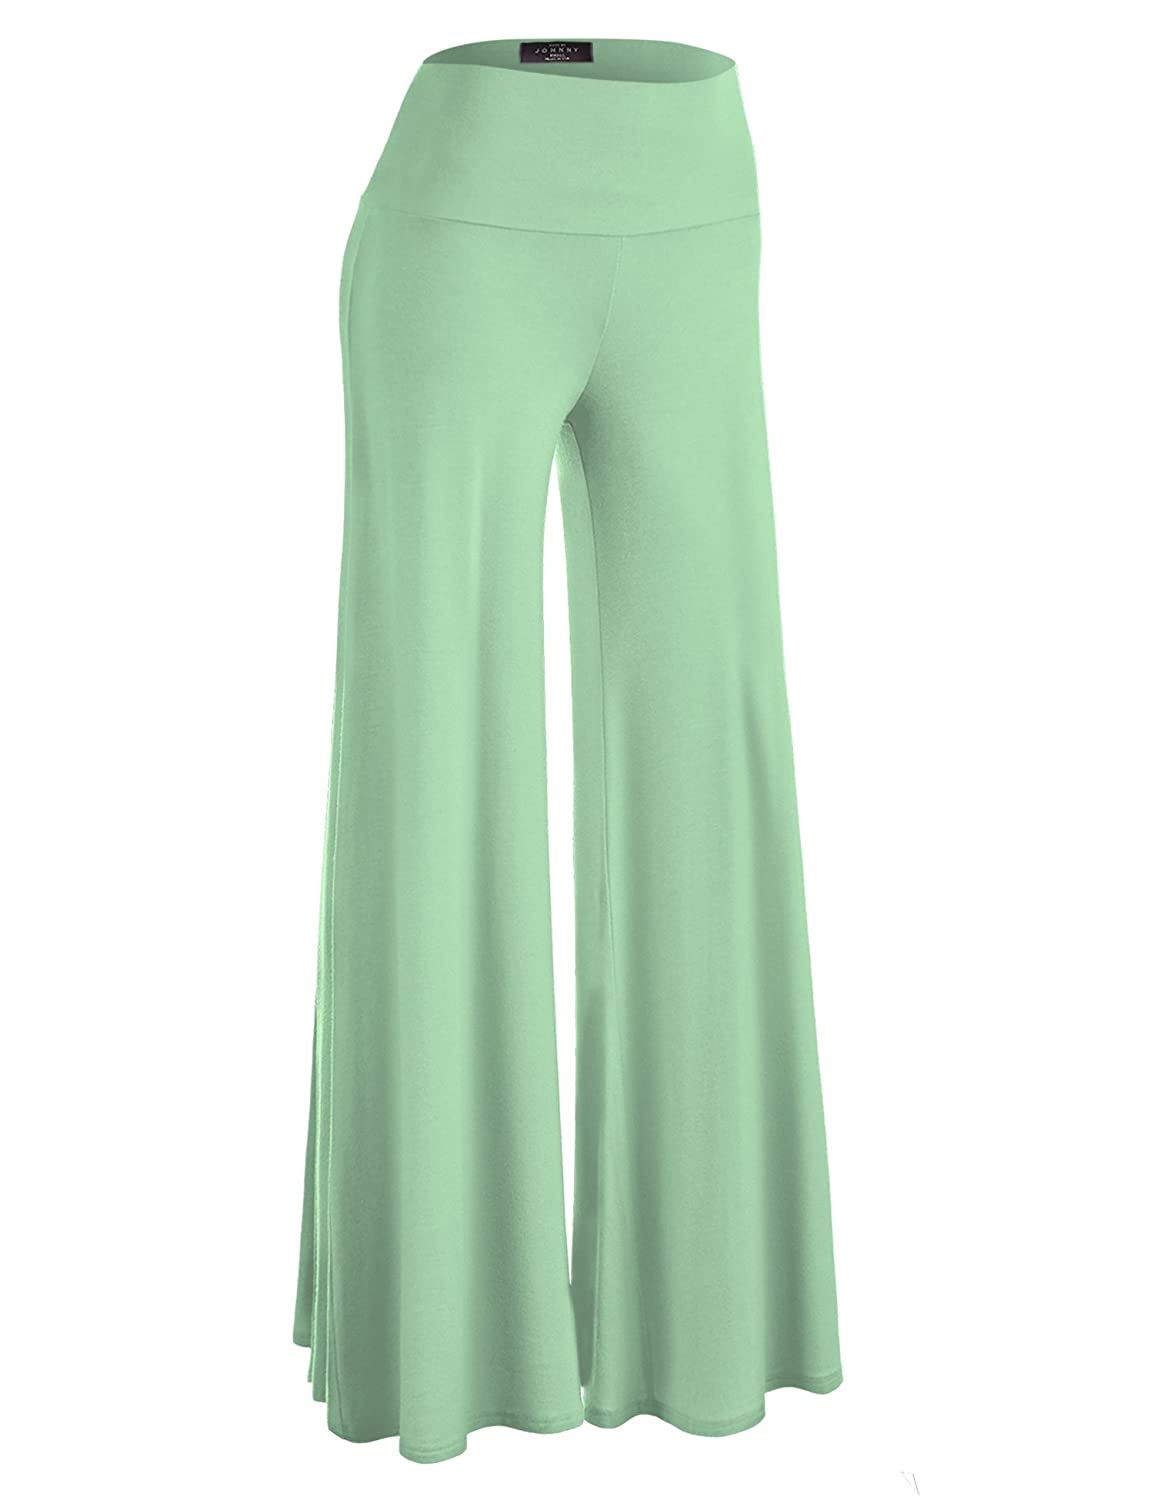 MBJ Womens Comfy Chic Palazzo Lounge Pant - Made in USA